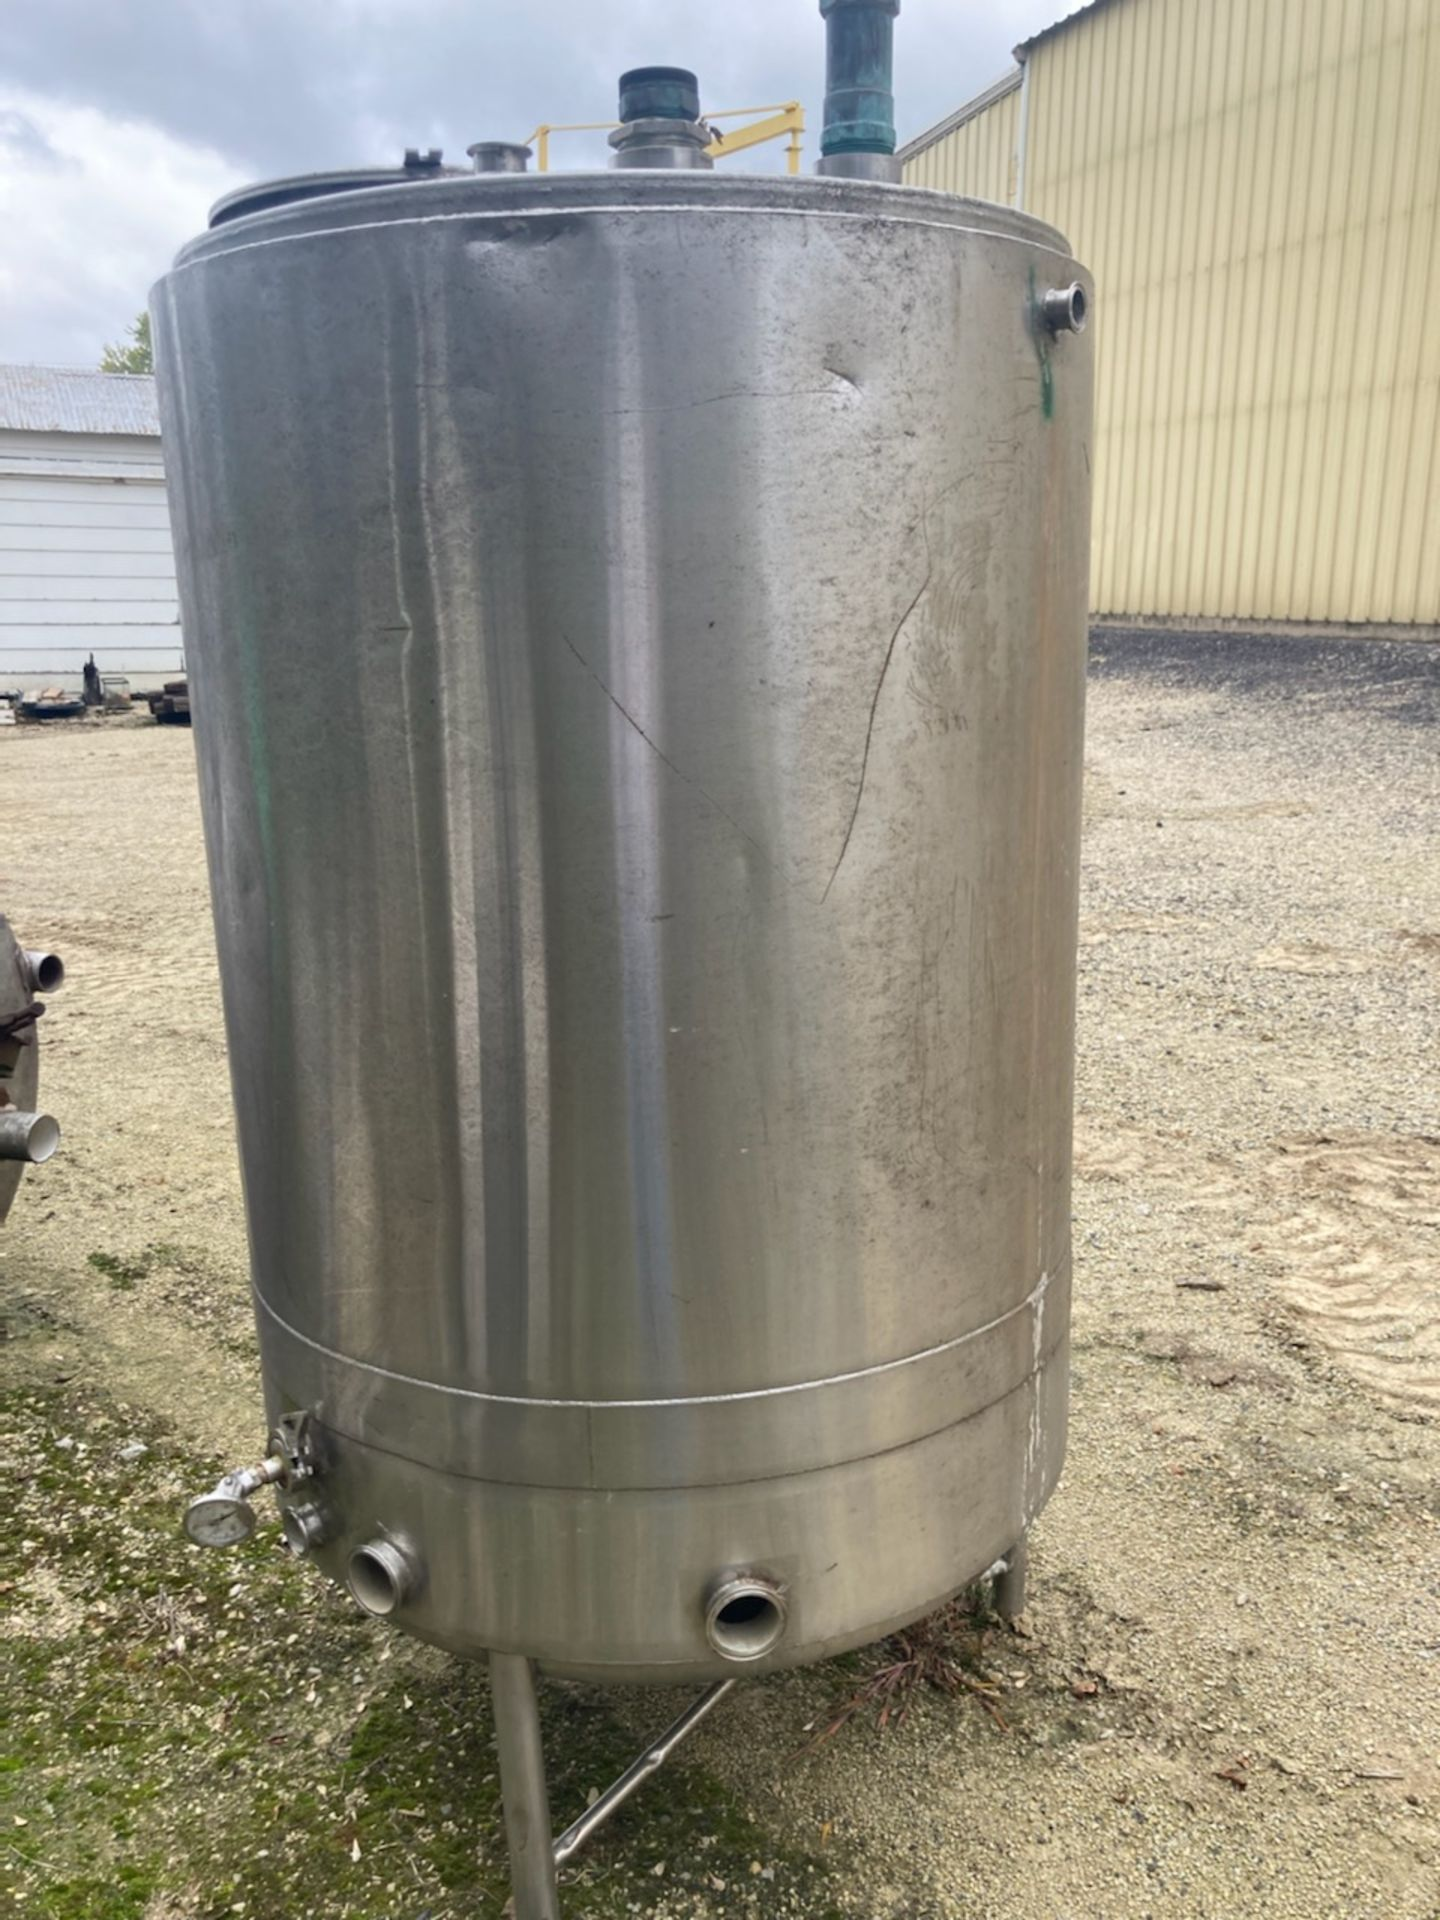 Stainless Steel Tank - Approximate 250 Gallons